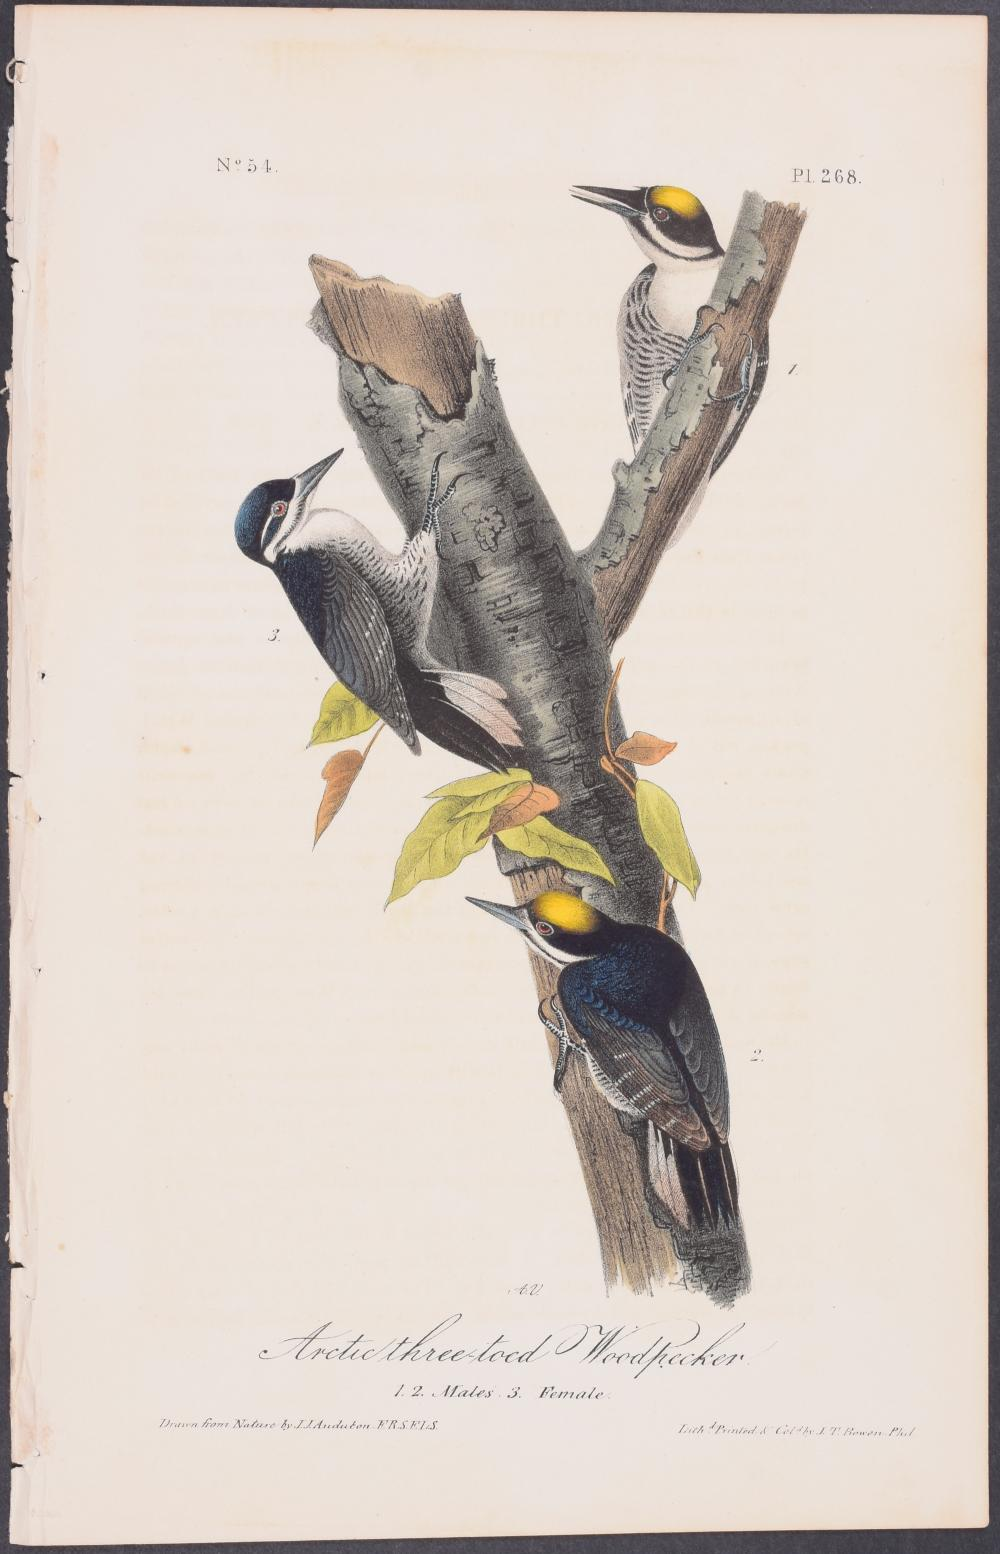 Lot 11103: Audubon - Arctic three-toed Woodpecker. 268